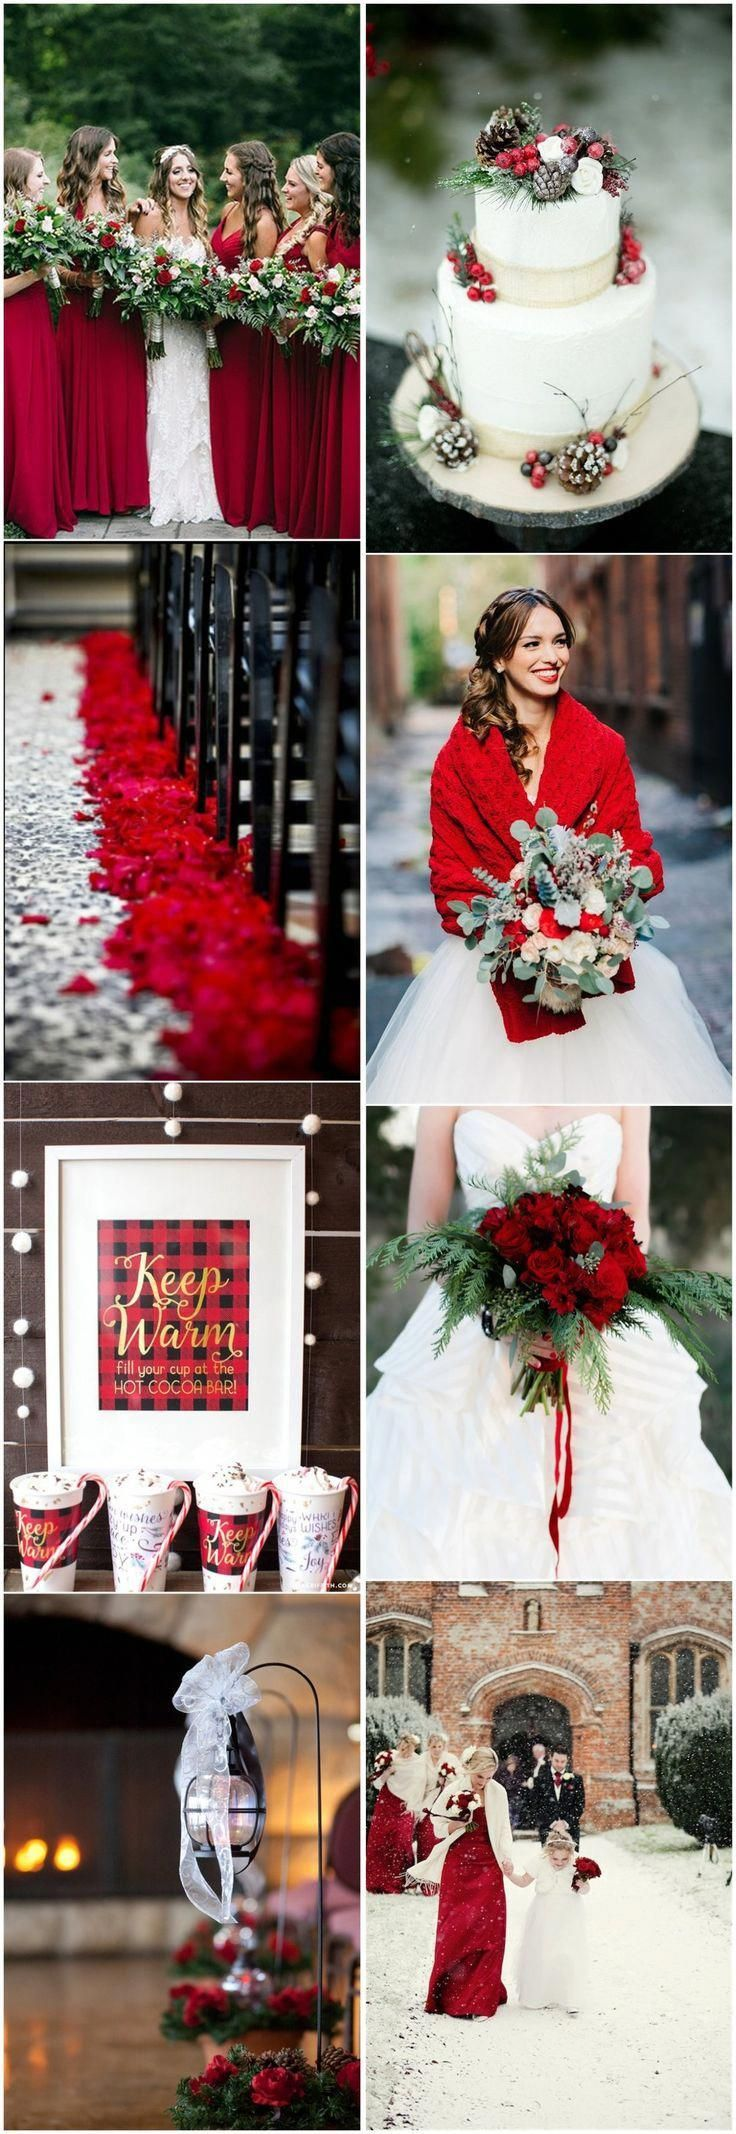 Thinking Of Getting Married You Must See These Country Wedding Ideas 6187 Countryweddingideas Winter Wedding Red Winter Wedding Colors Red Wedding